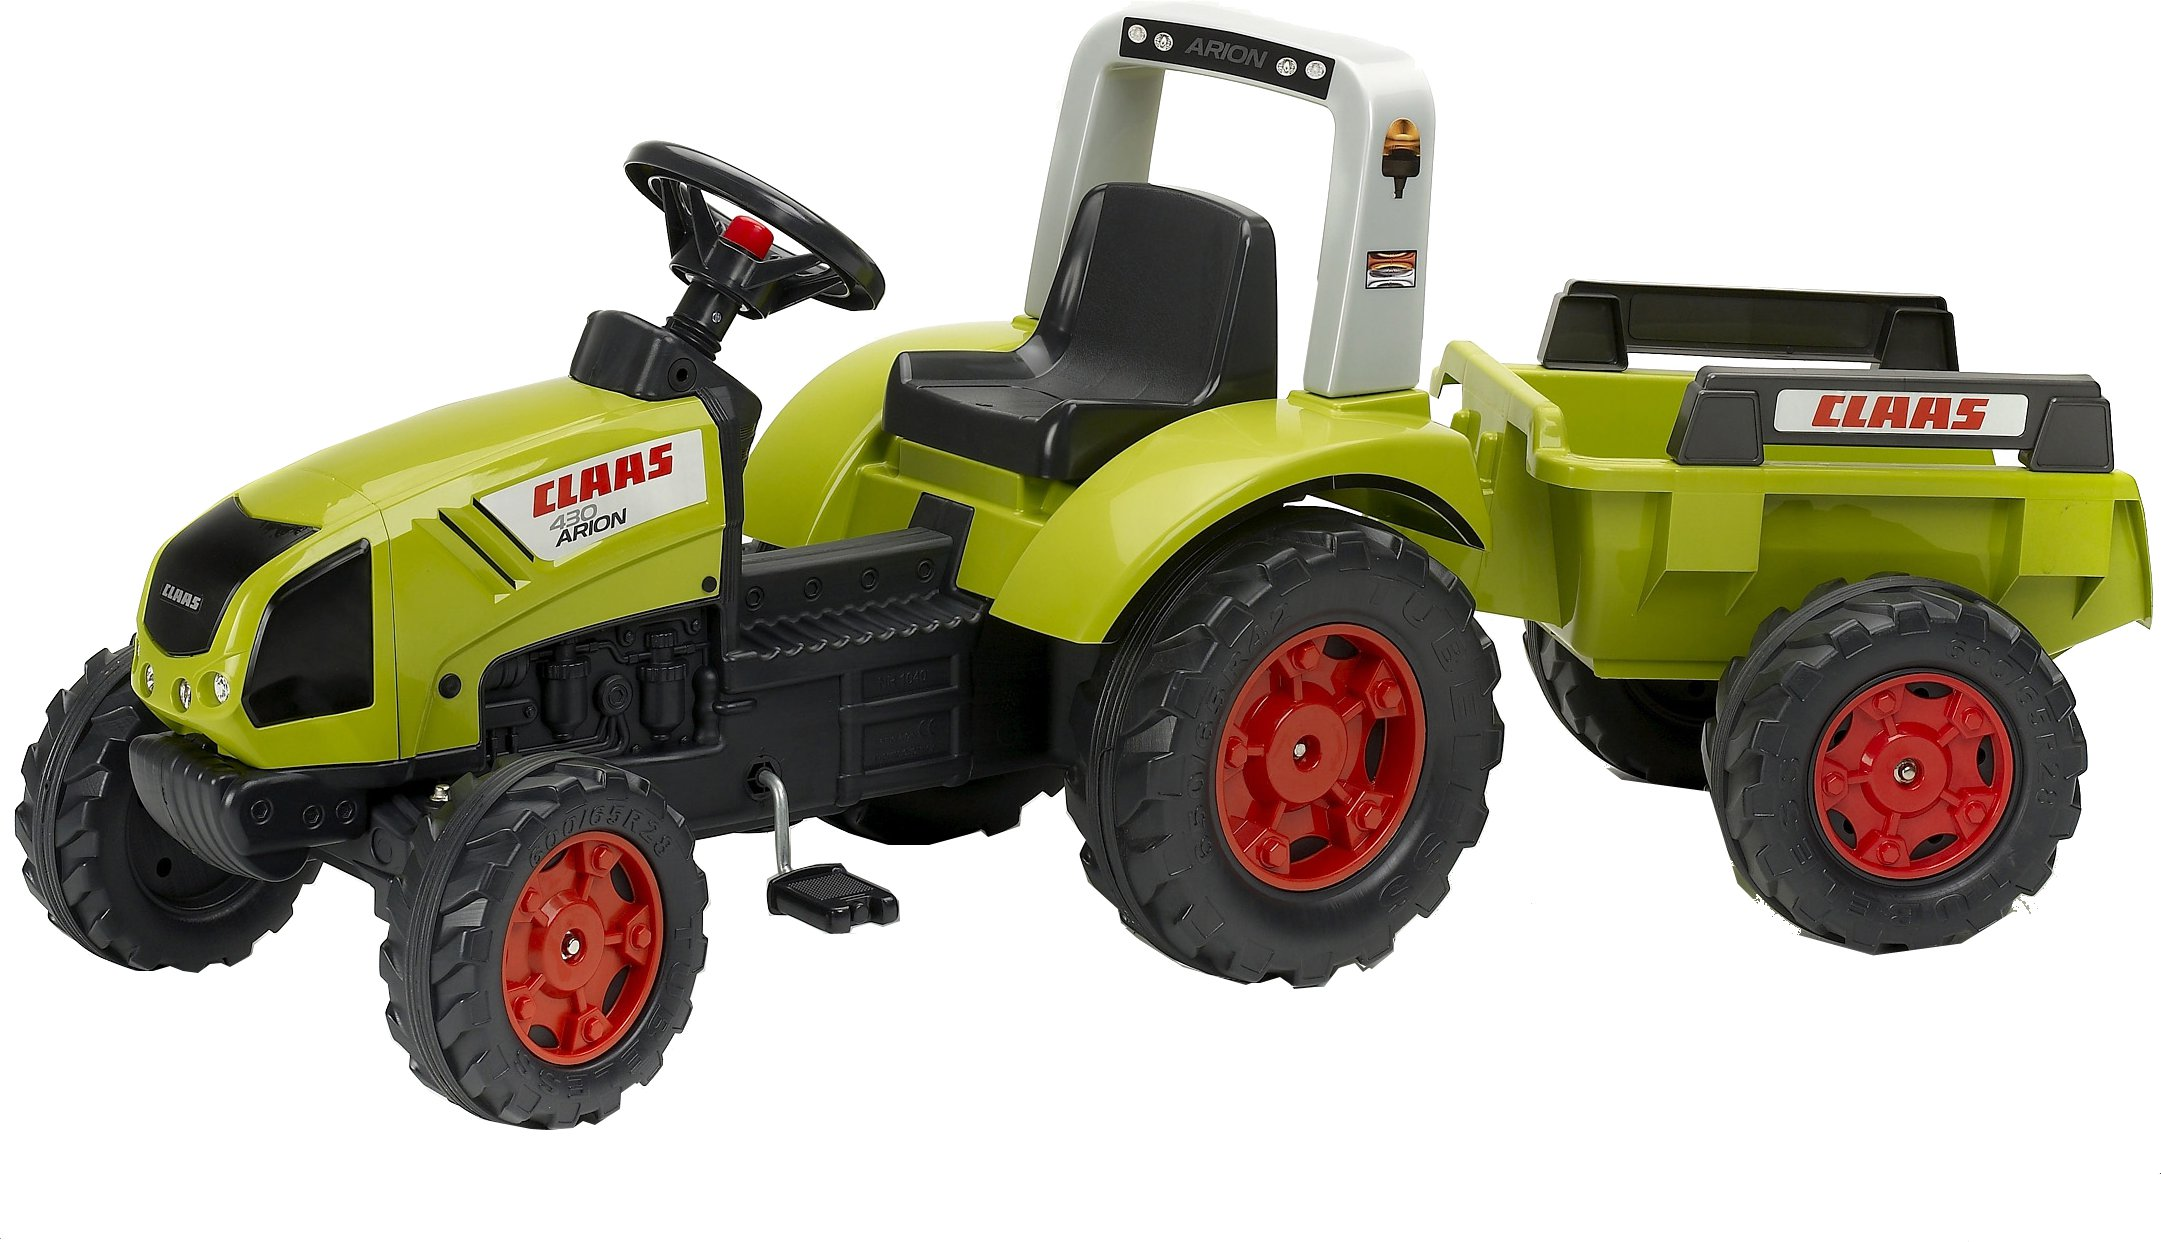 Falk tractor claas arion 430